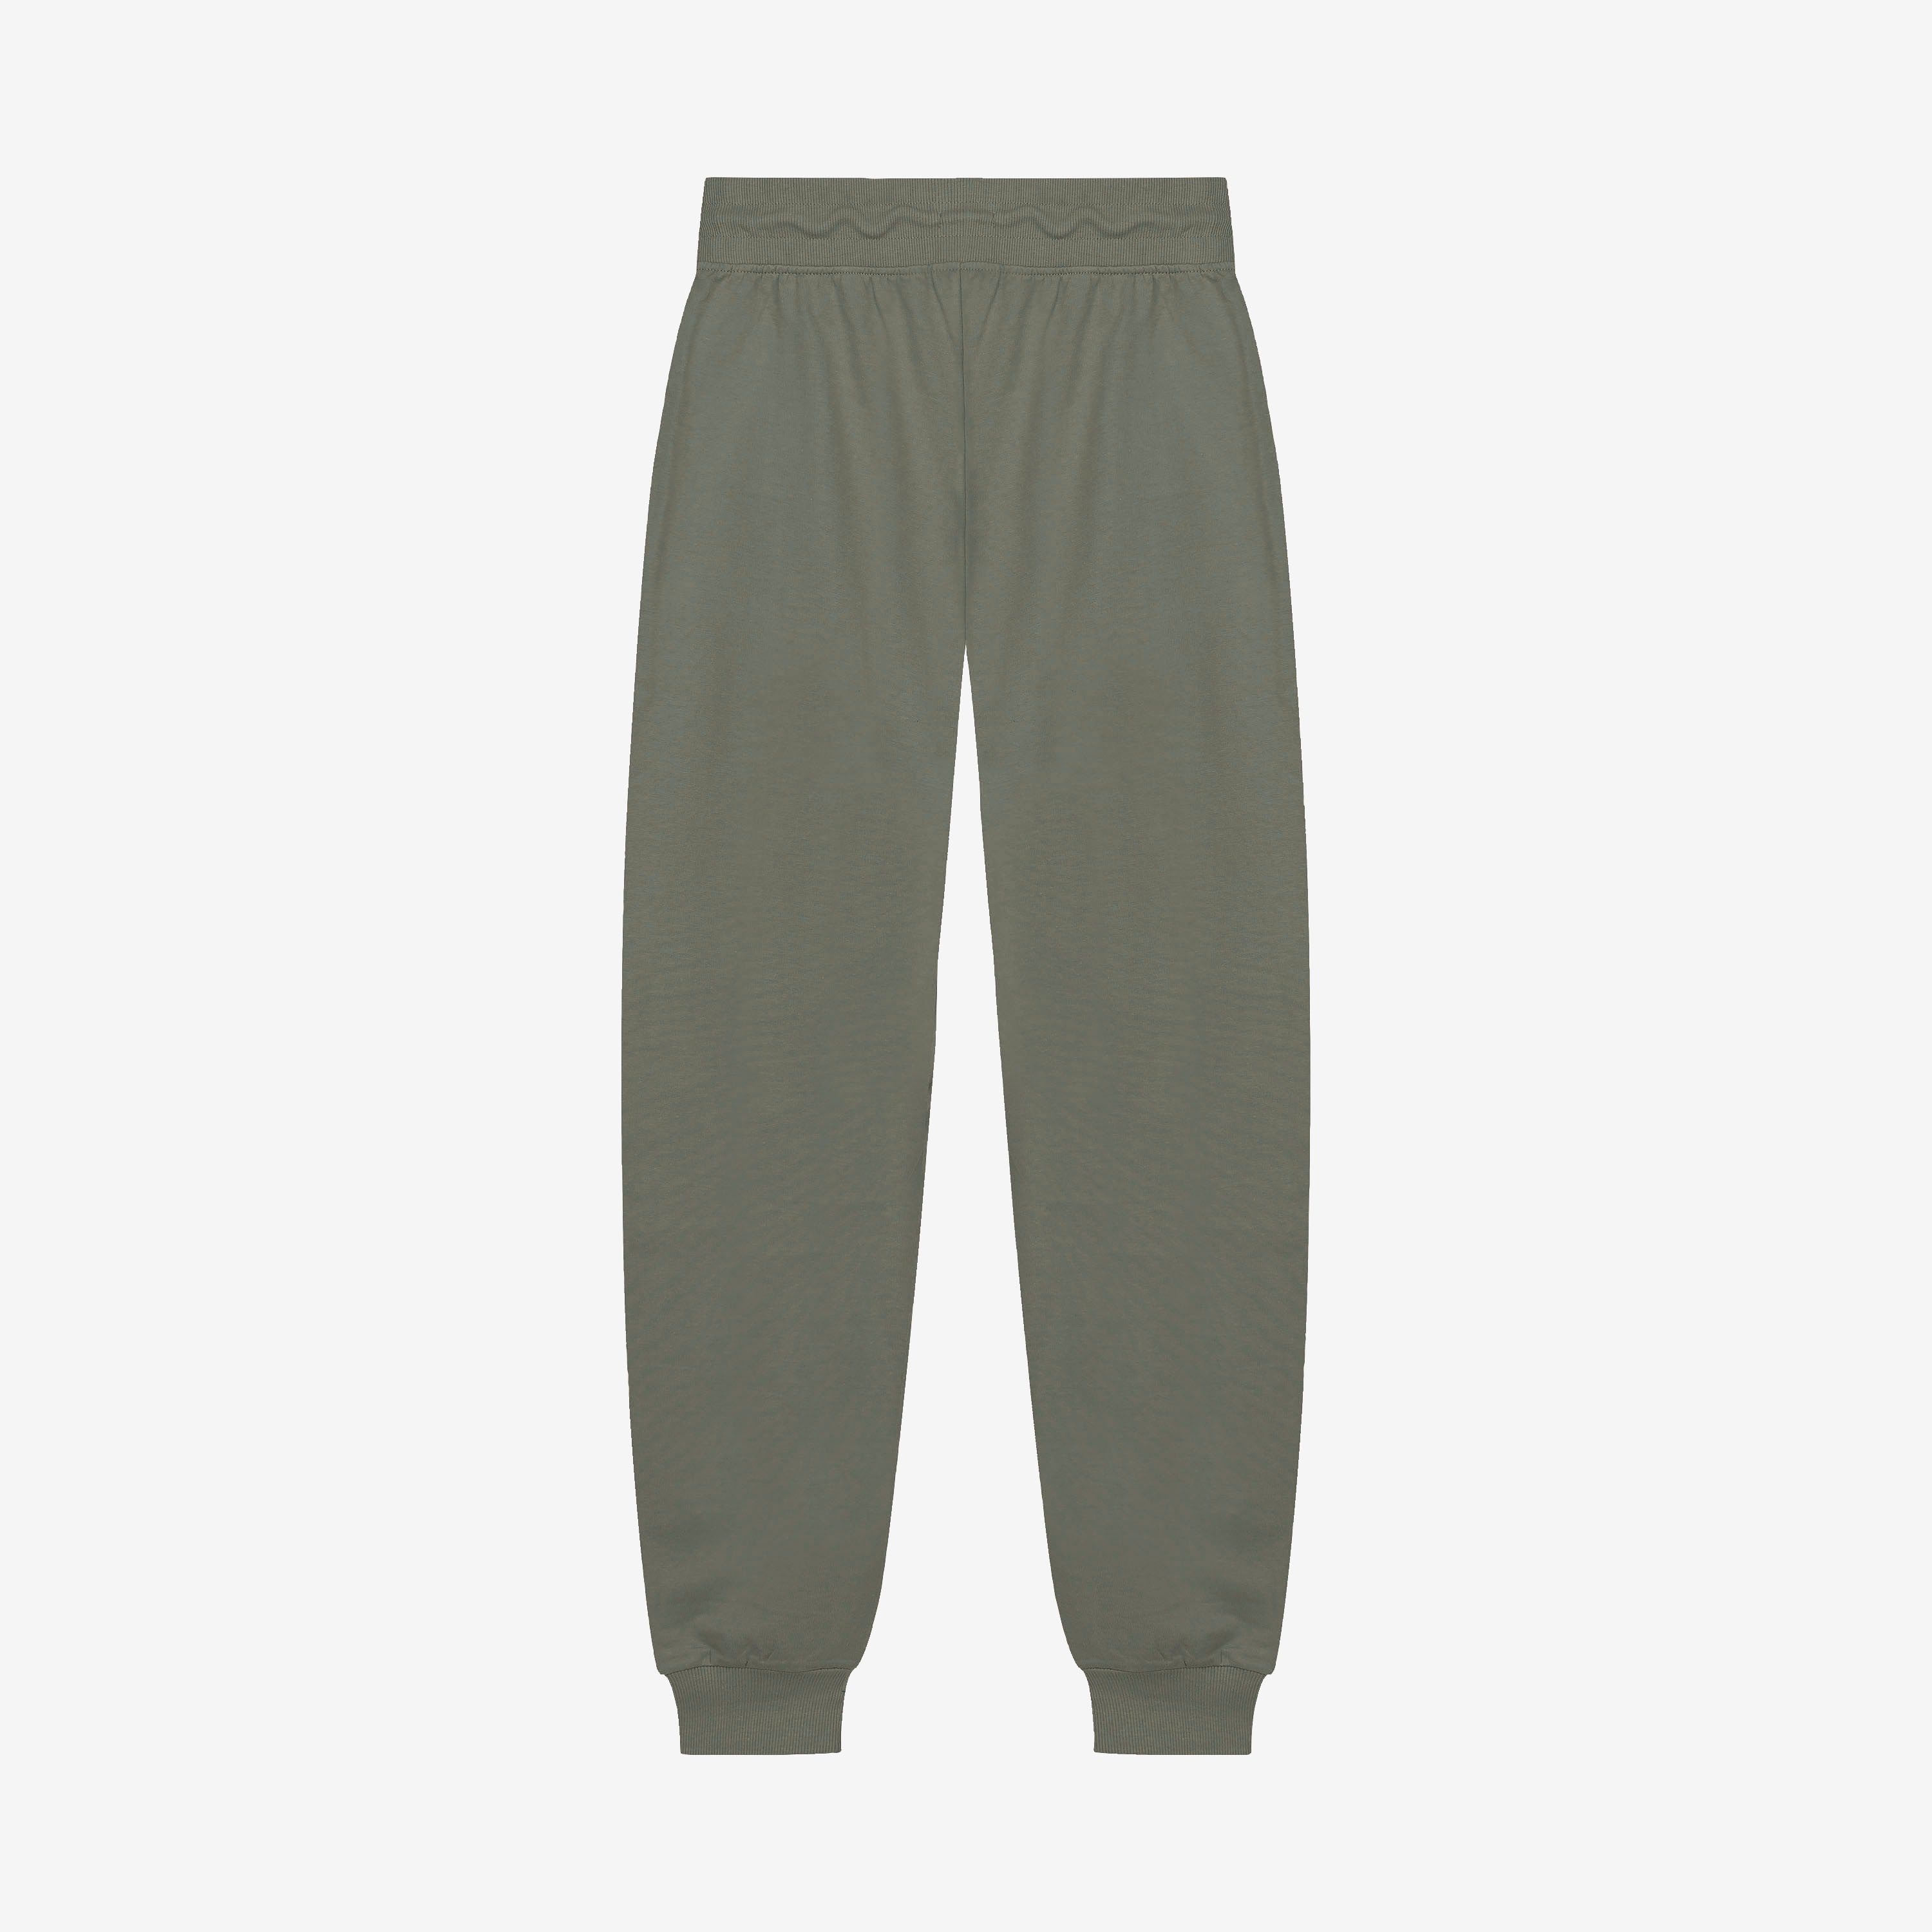 637-40_Lounge-Pant_olive-green_CO-B